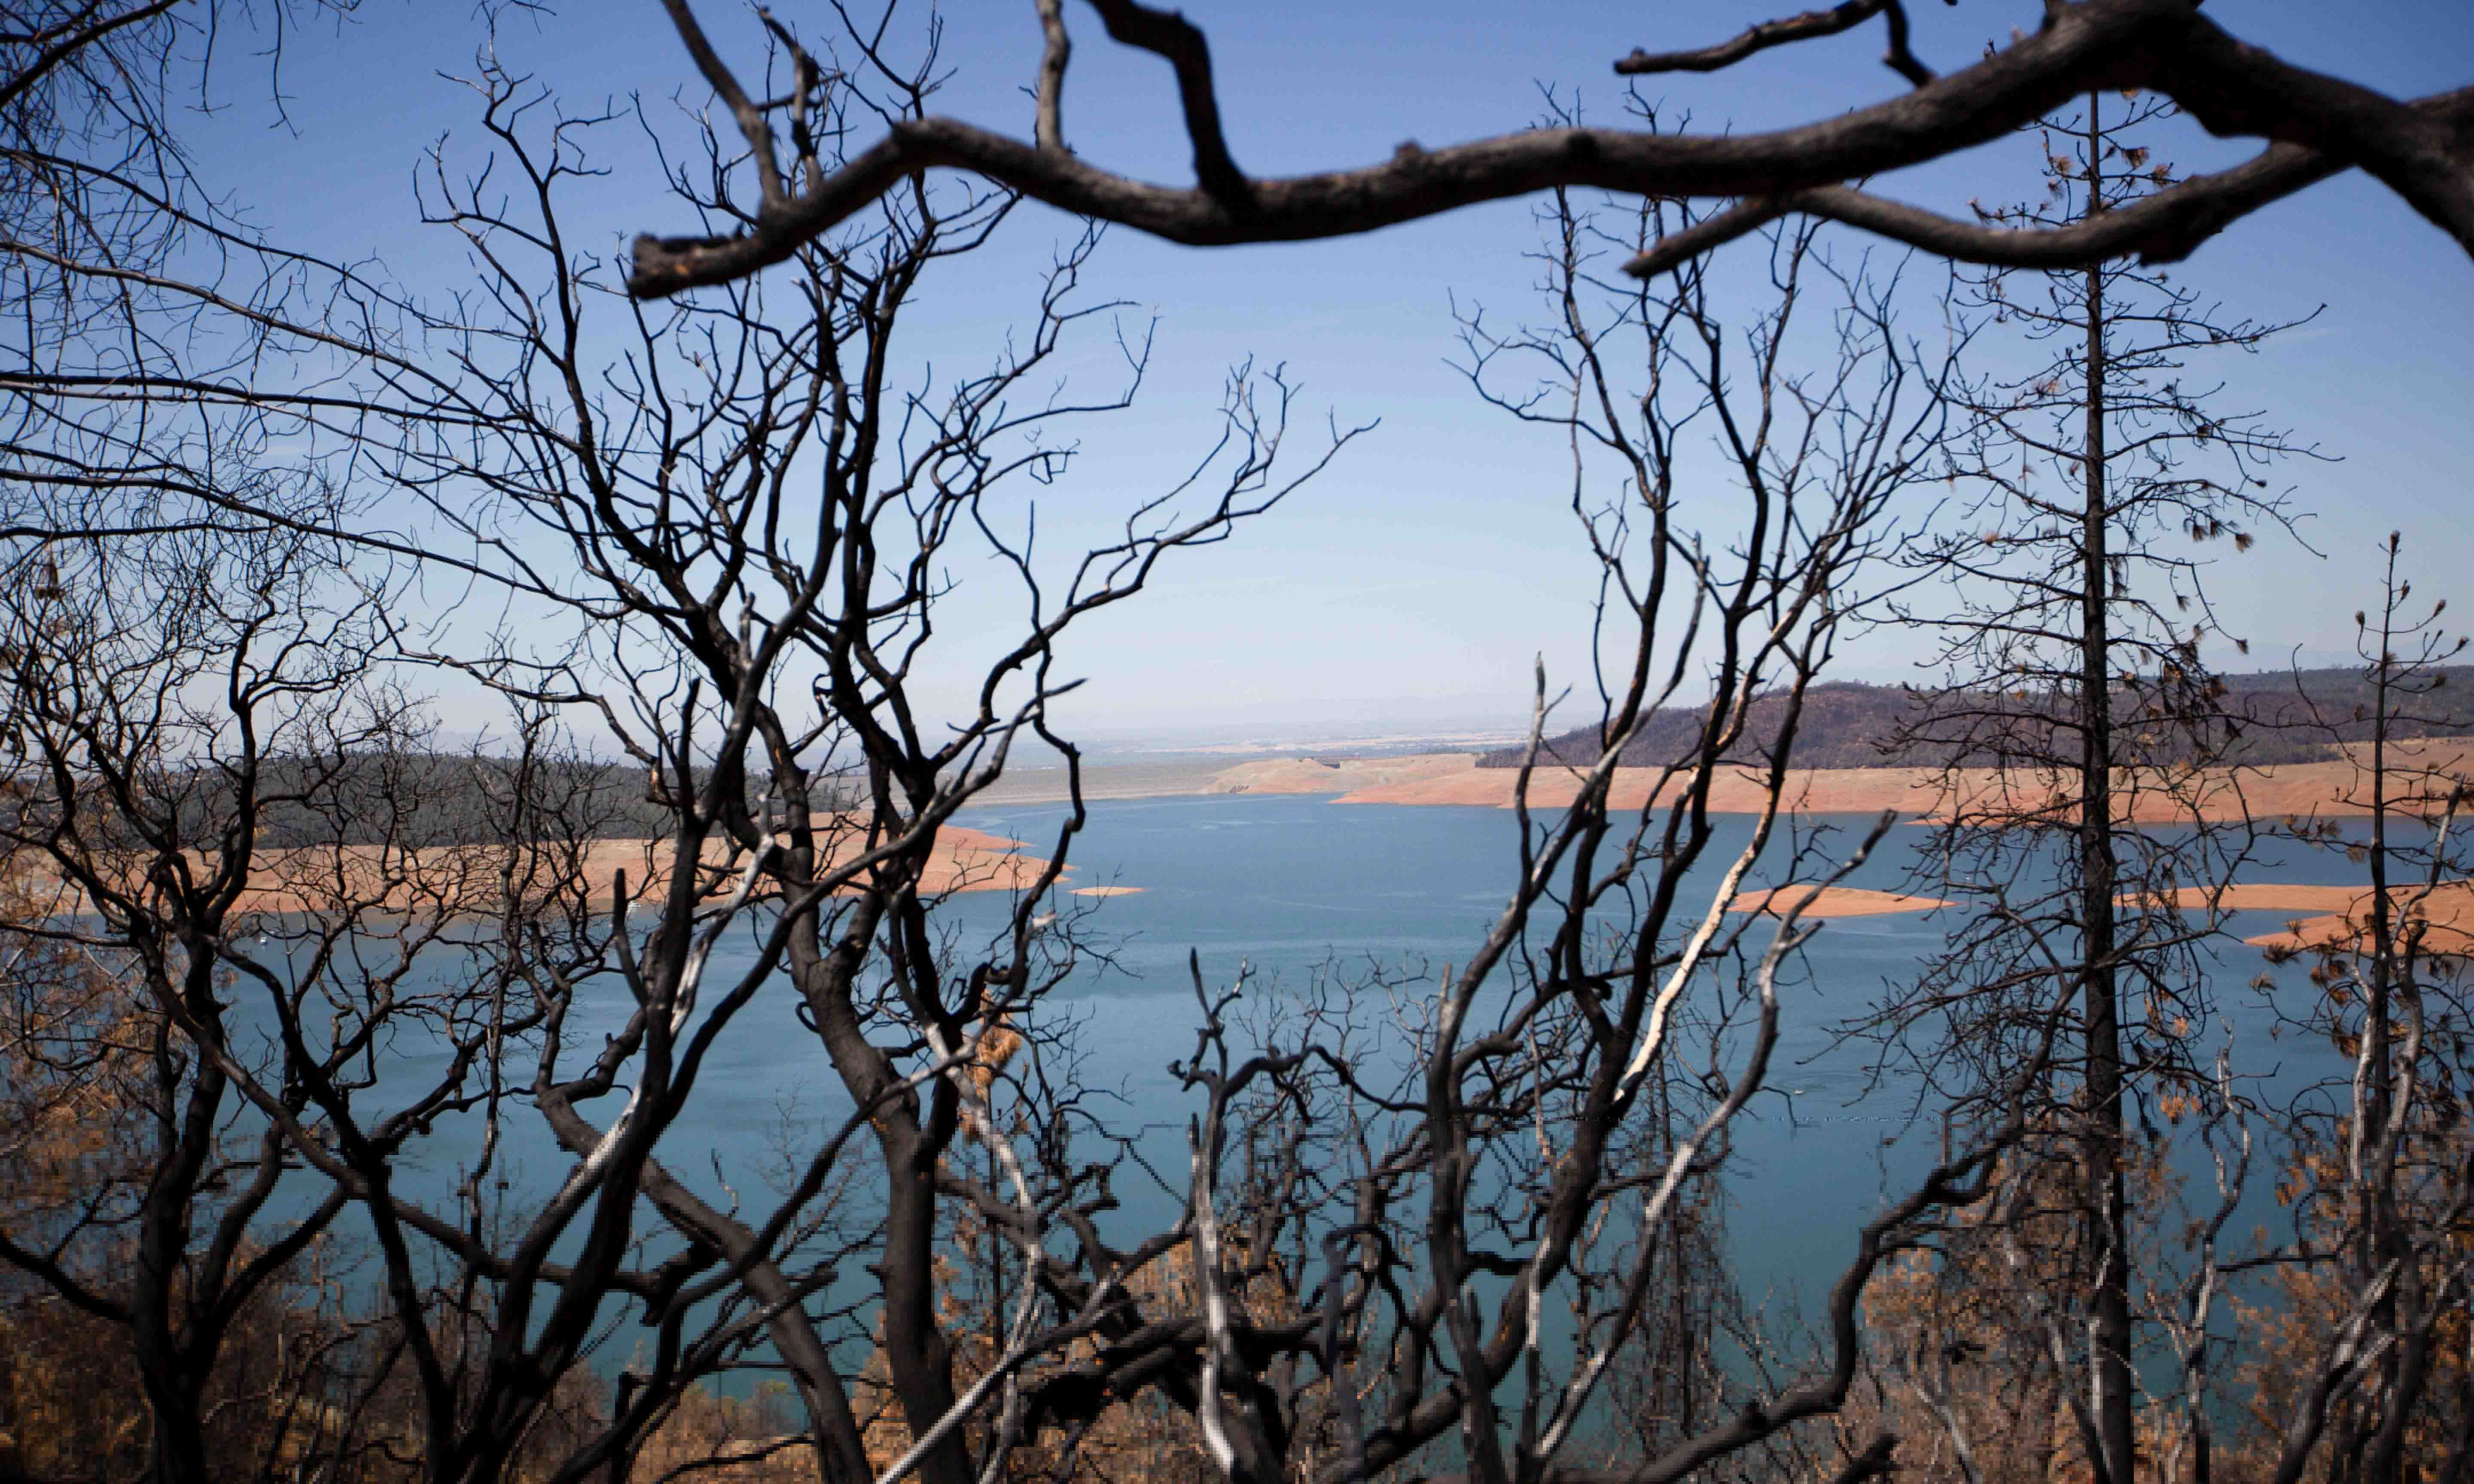 Water scarcity and drought are set to wreak damage on a scale to rival the Covid-19 pandemic with risks growing rapidly as global temperatures rise, according to the United Nations. — Reuters